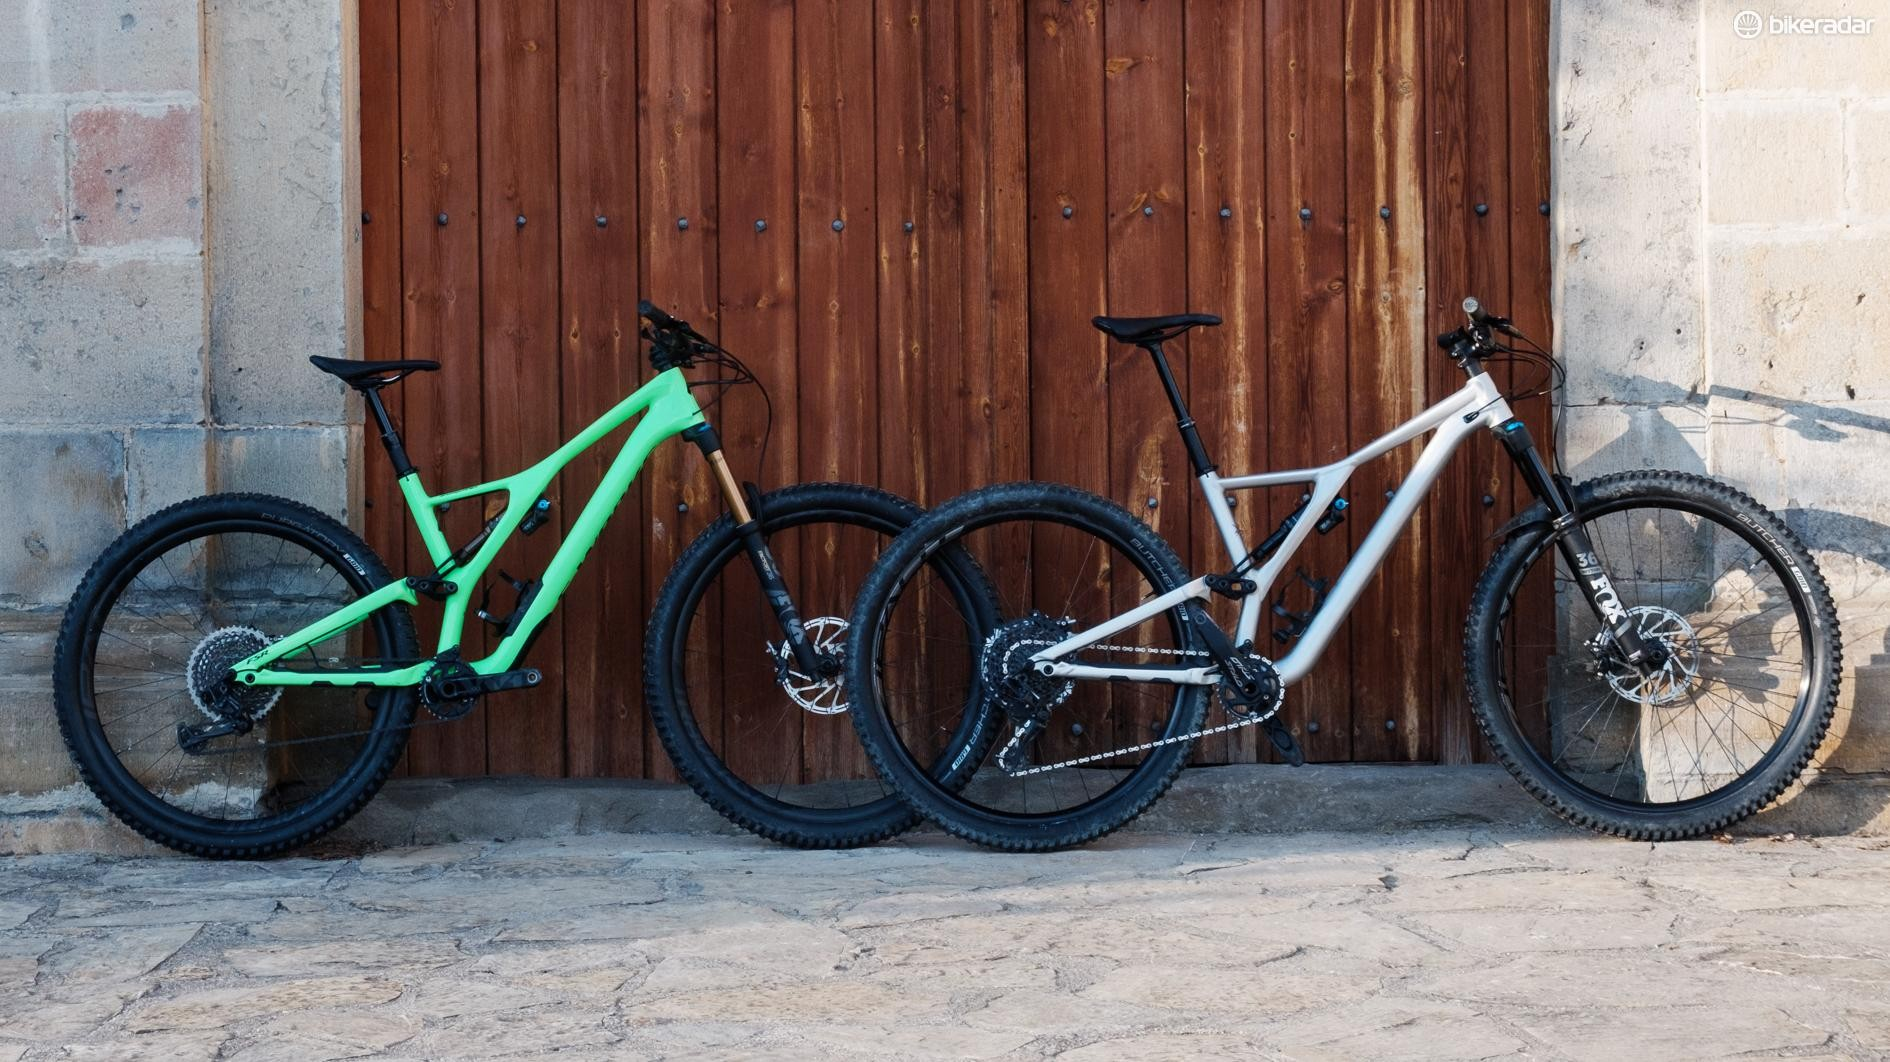 The two bikes ride very differently, and that's no bad thing